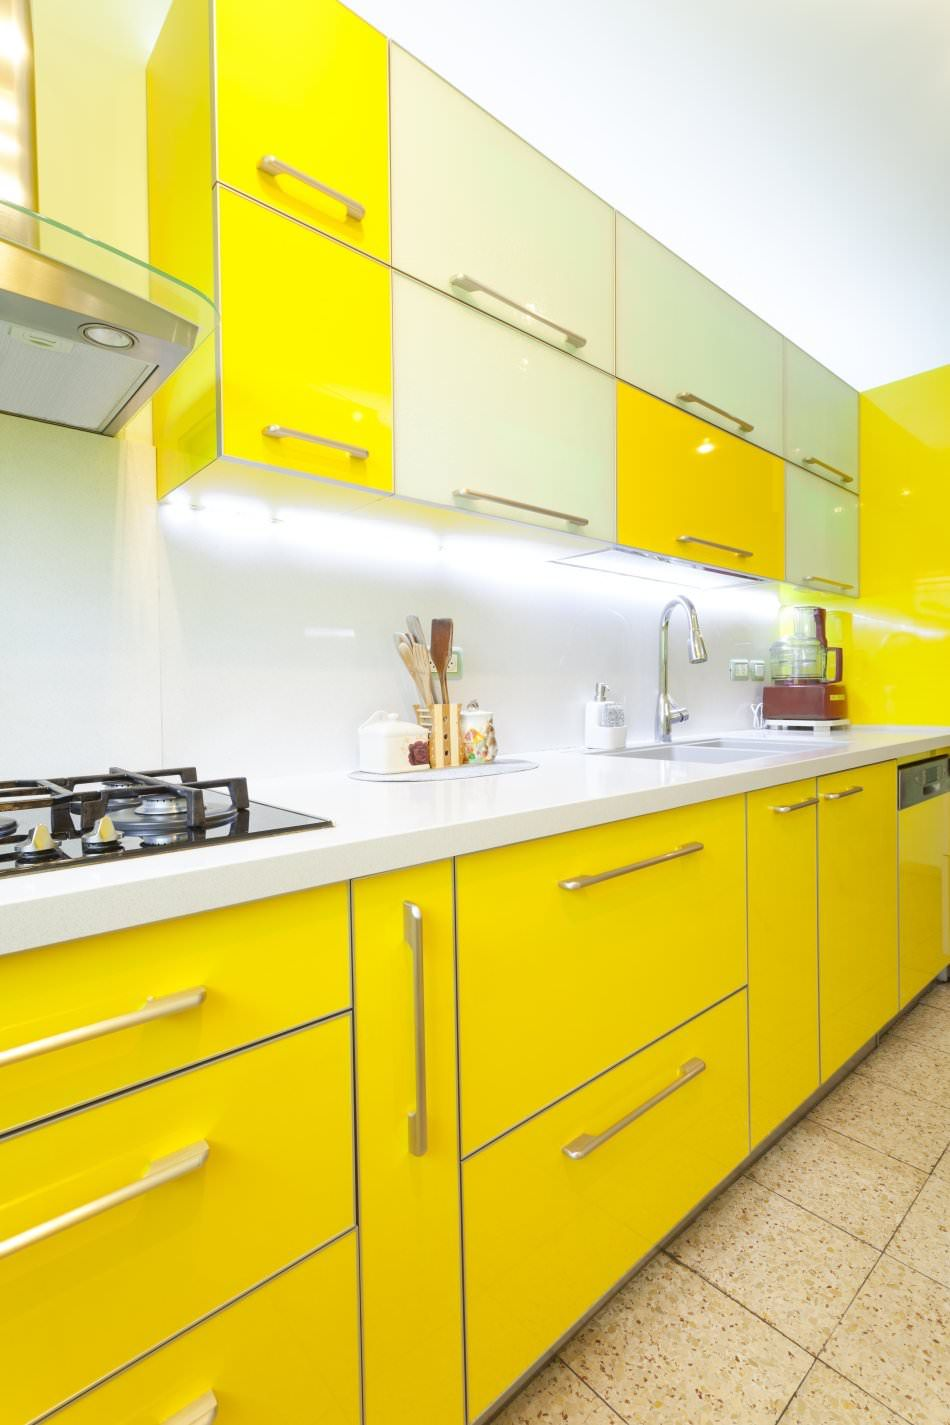 Hg Lacquer Ral Luminous Yellow Find The Best Cabinets To Renovate Your Kitchen At 27estore Modern Kitchen Design Yellow Kitchen Cabinets Kitchen Design